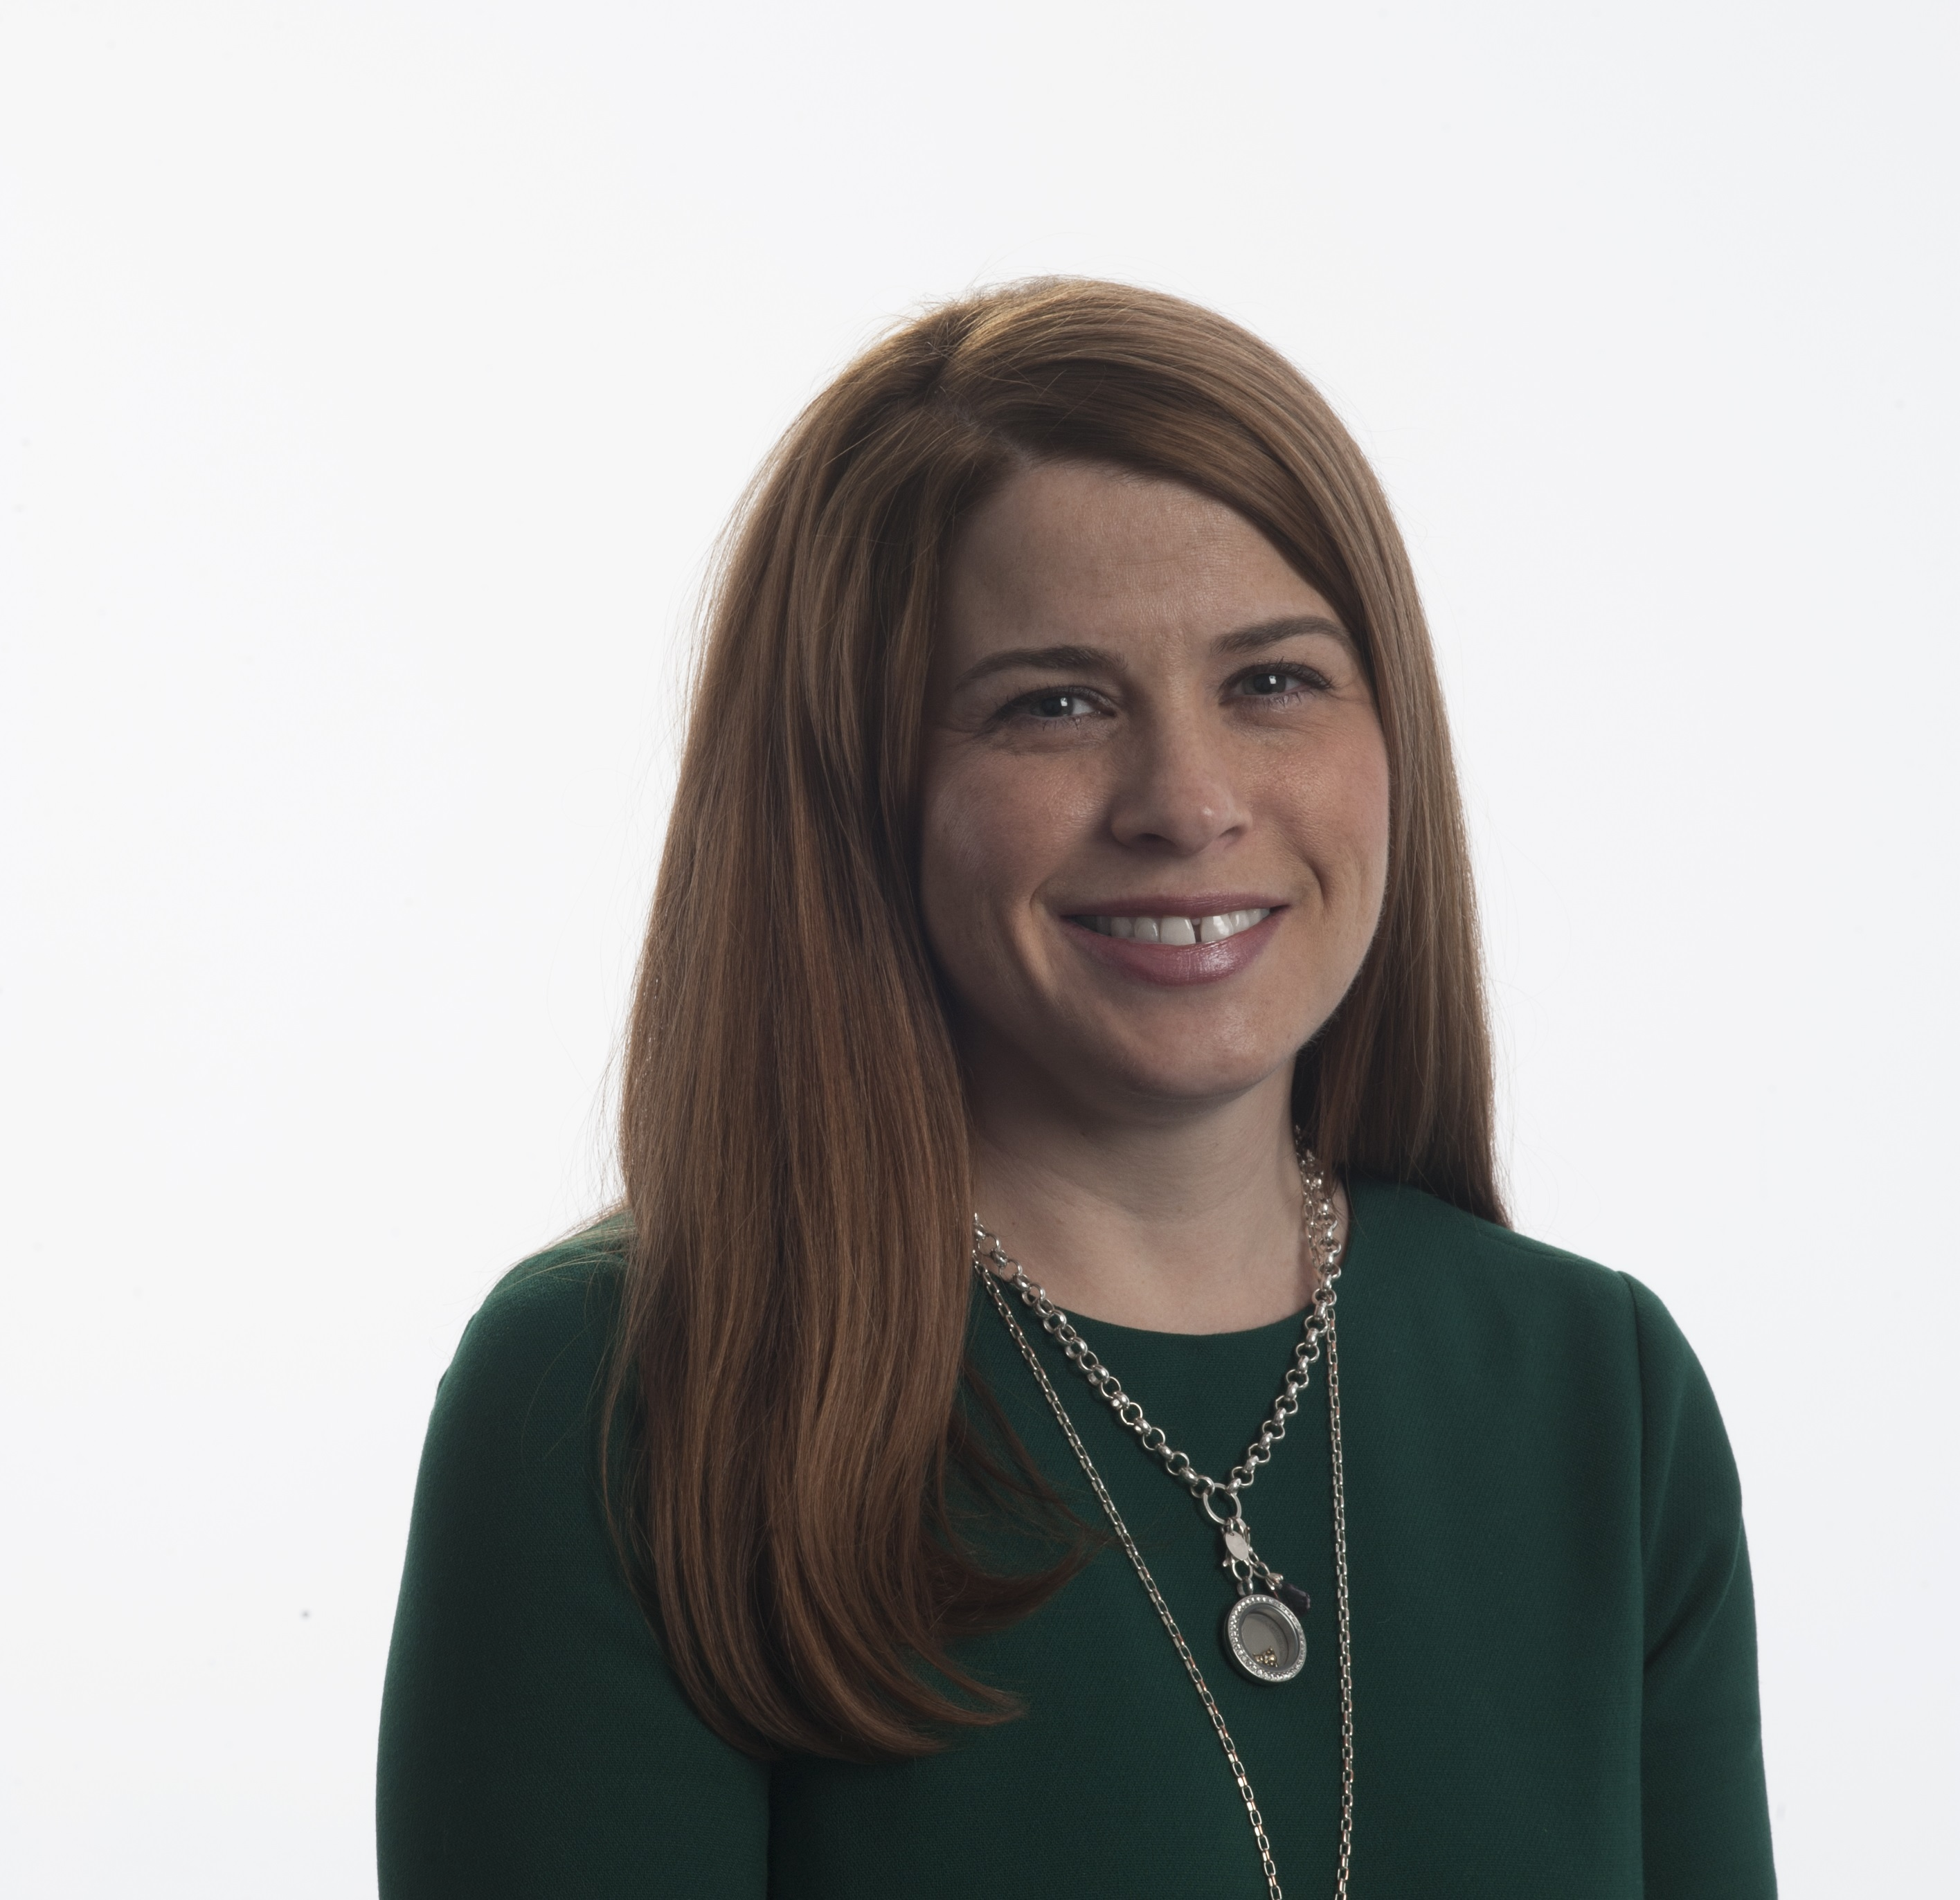 Erin M. Strohbehn. Photo courtesy of Gimbel, Reilly, Guerin & Brown LLP.